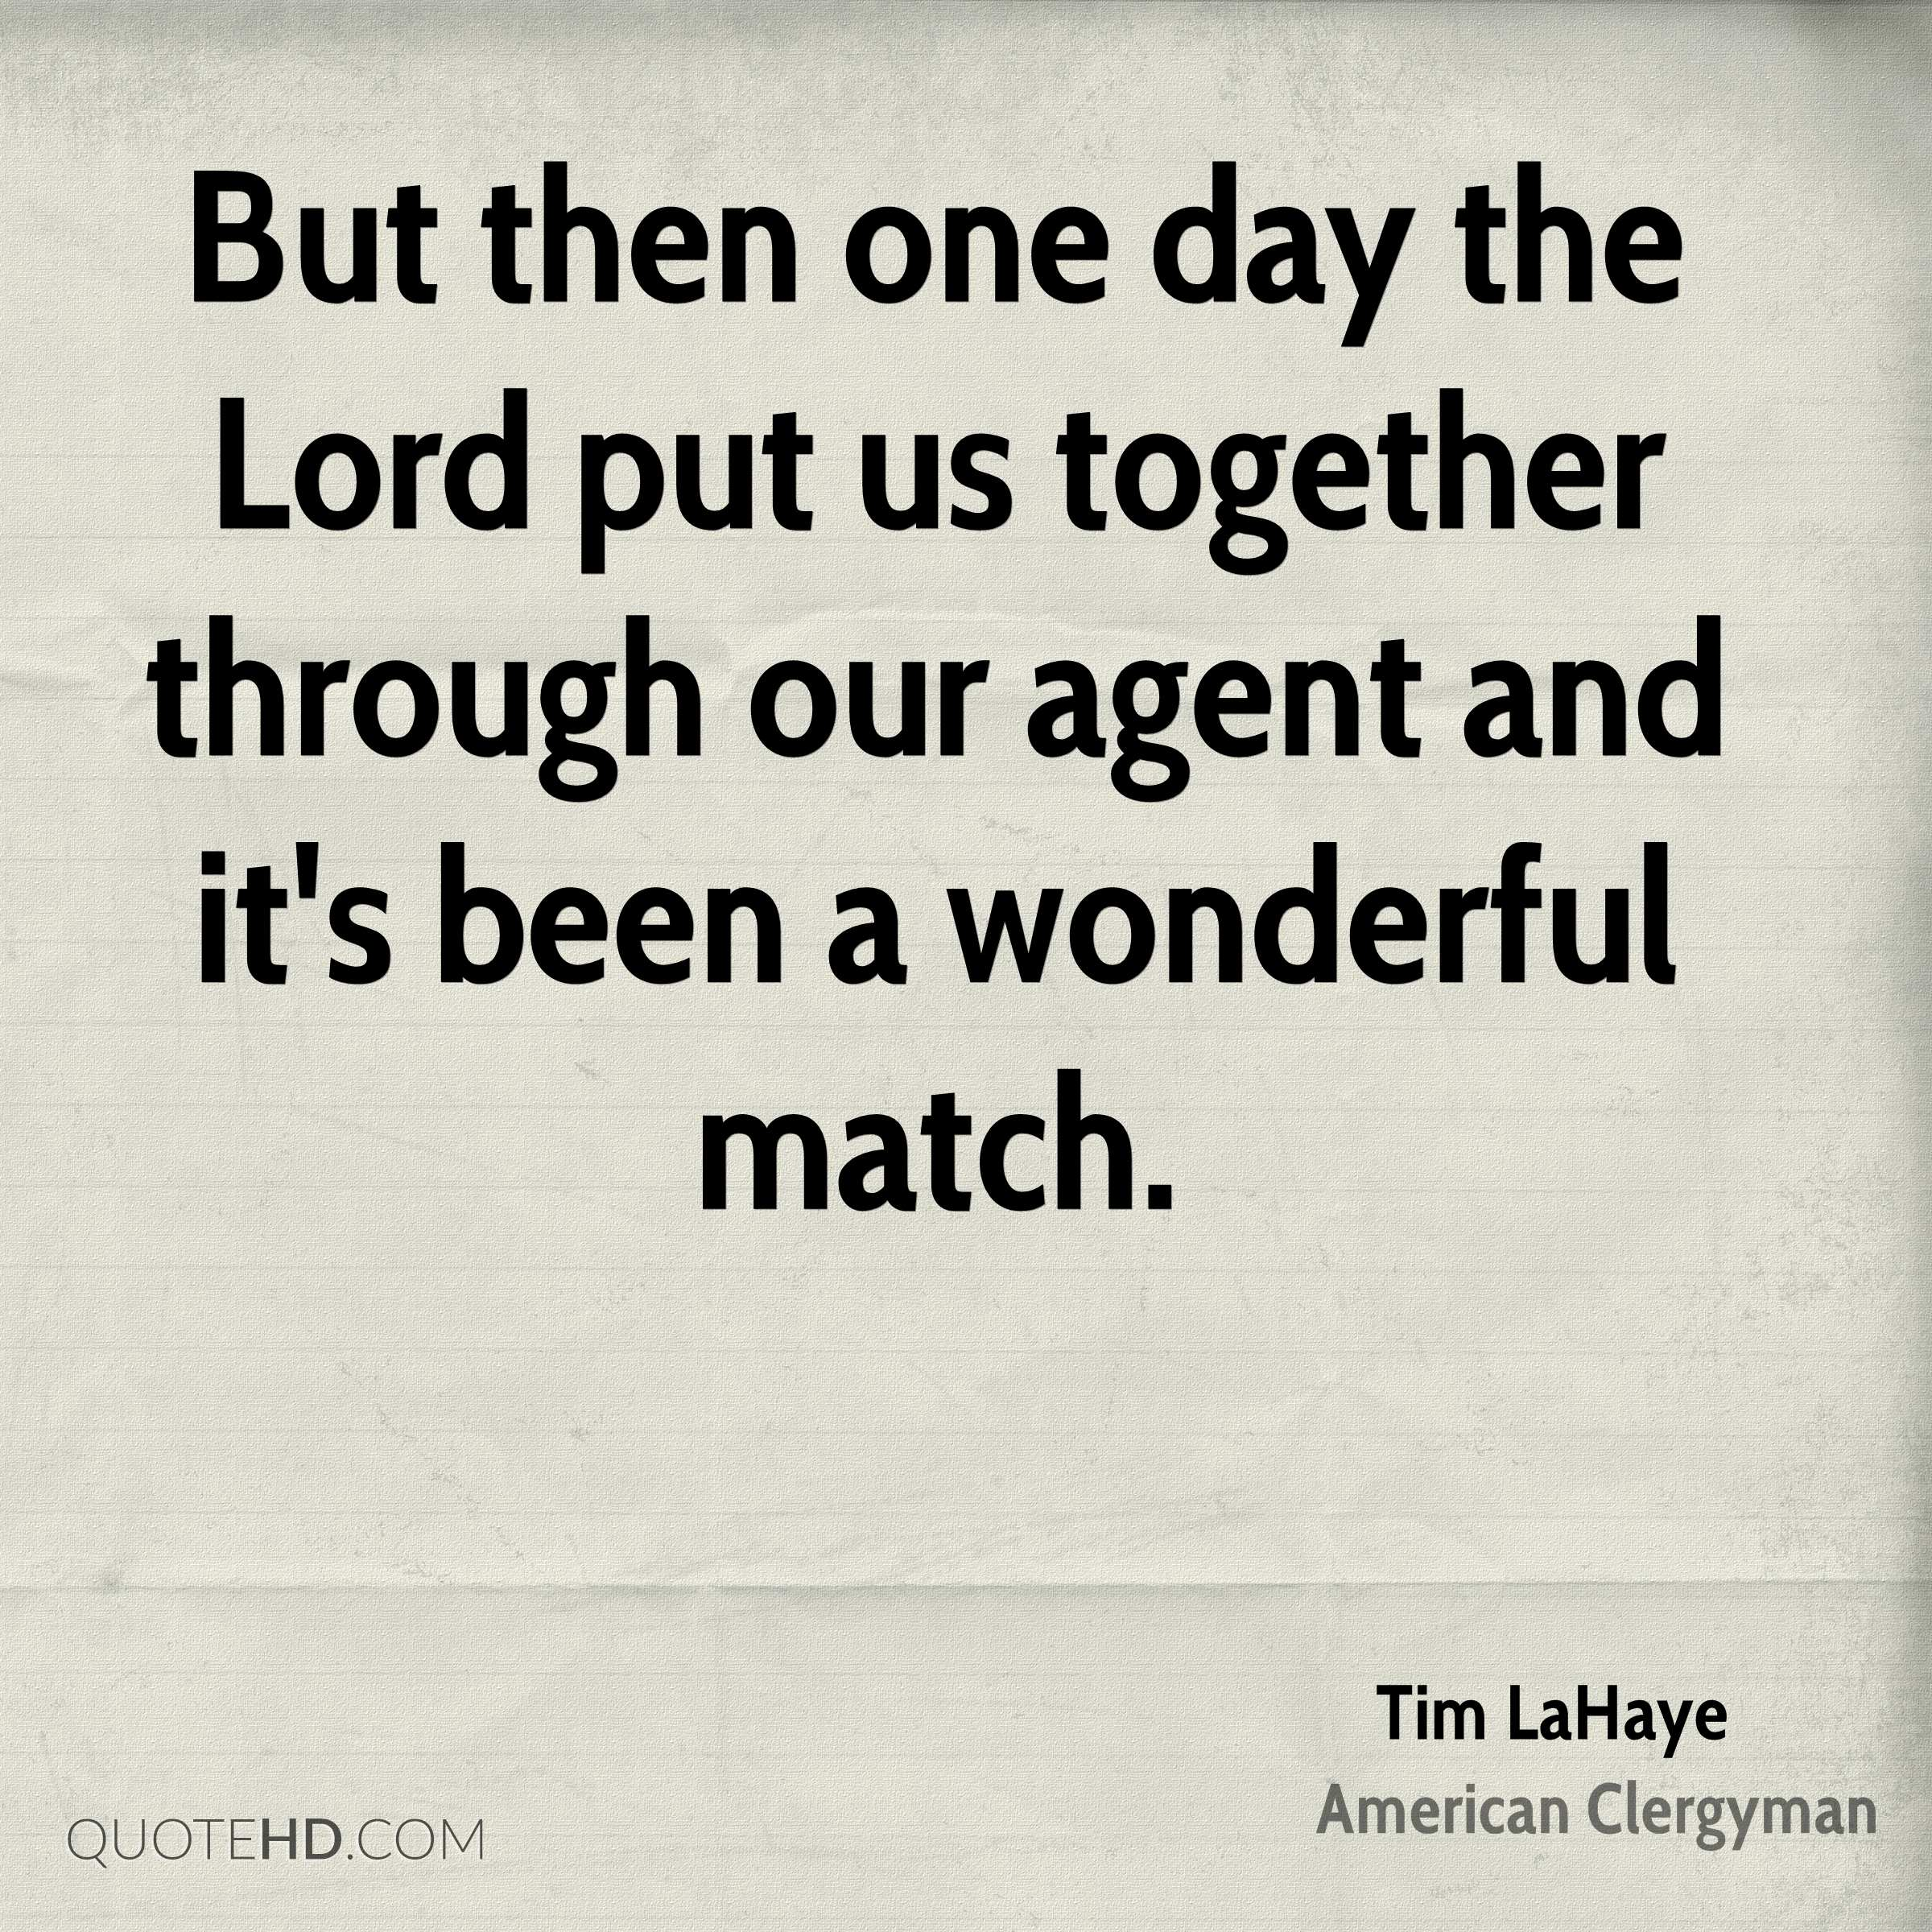 But then one day the Lord put us together through our agent and it's been a wonderful match.